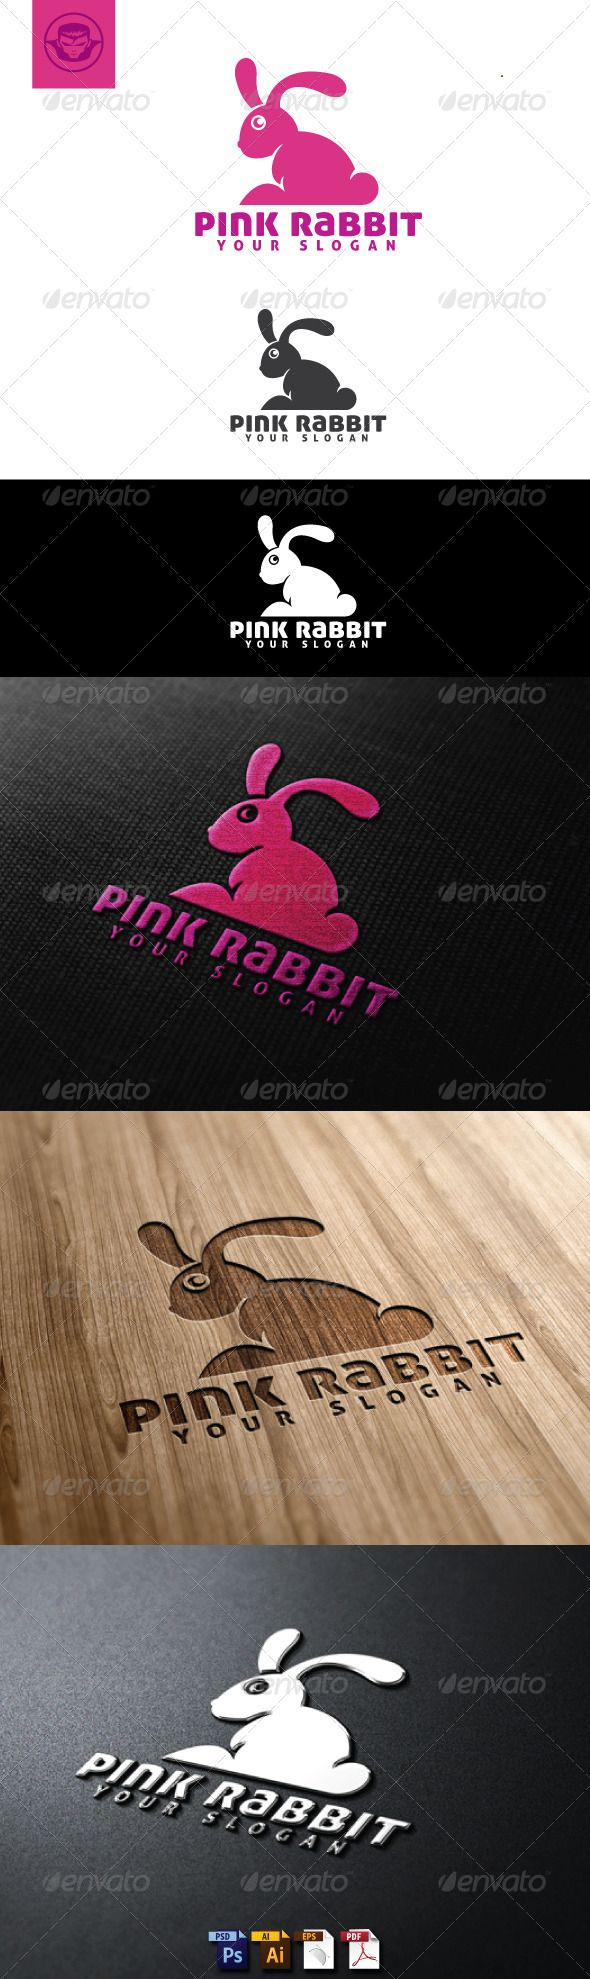 Pink Rabbit Logo Template — Photoshop PSD #simple #shop • Available here → https://graphicriver.net/item/pink-rabbit-logo-template/4884802?ref=pxcr